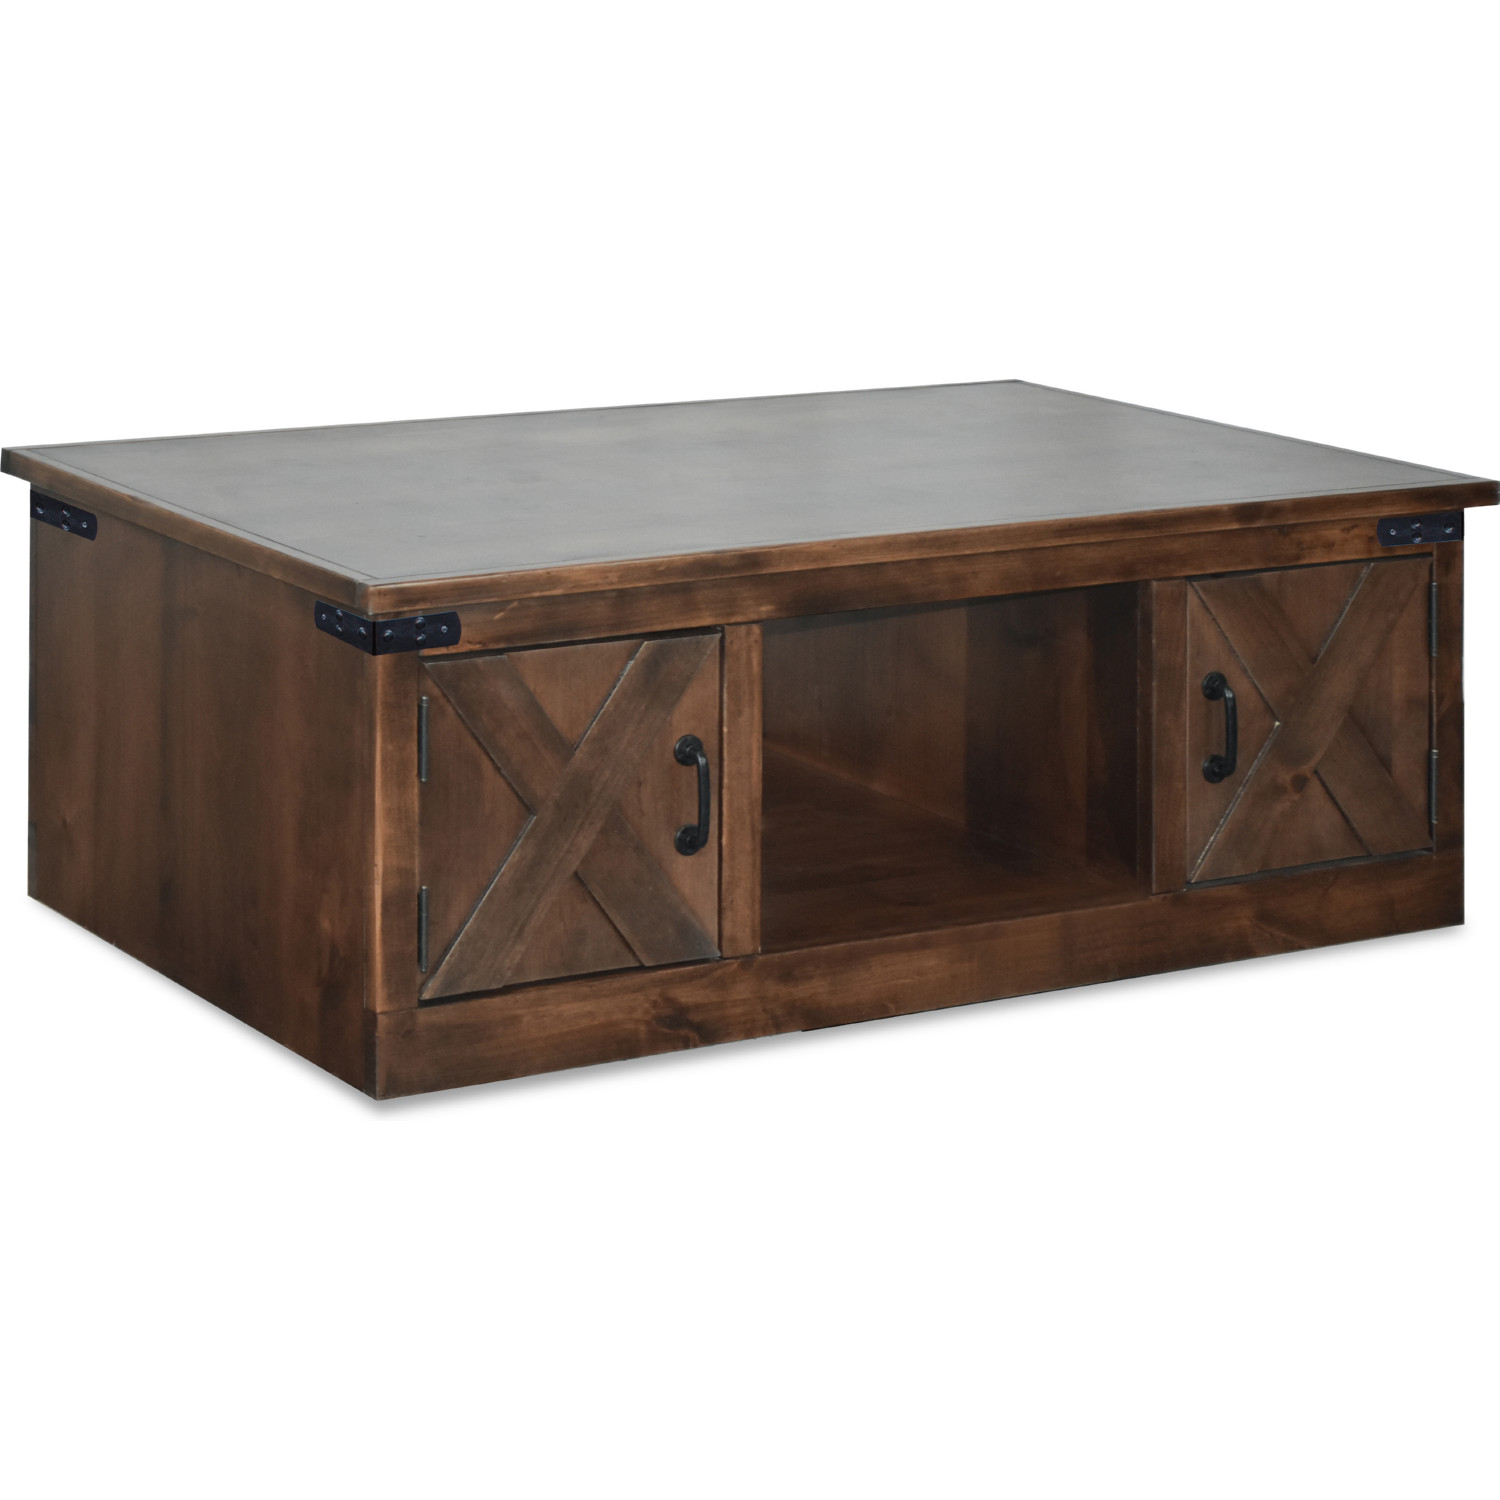 Legends Fh4210 Awy Farmhouse Coffee Table In Distressed Aged Wiskey